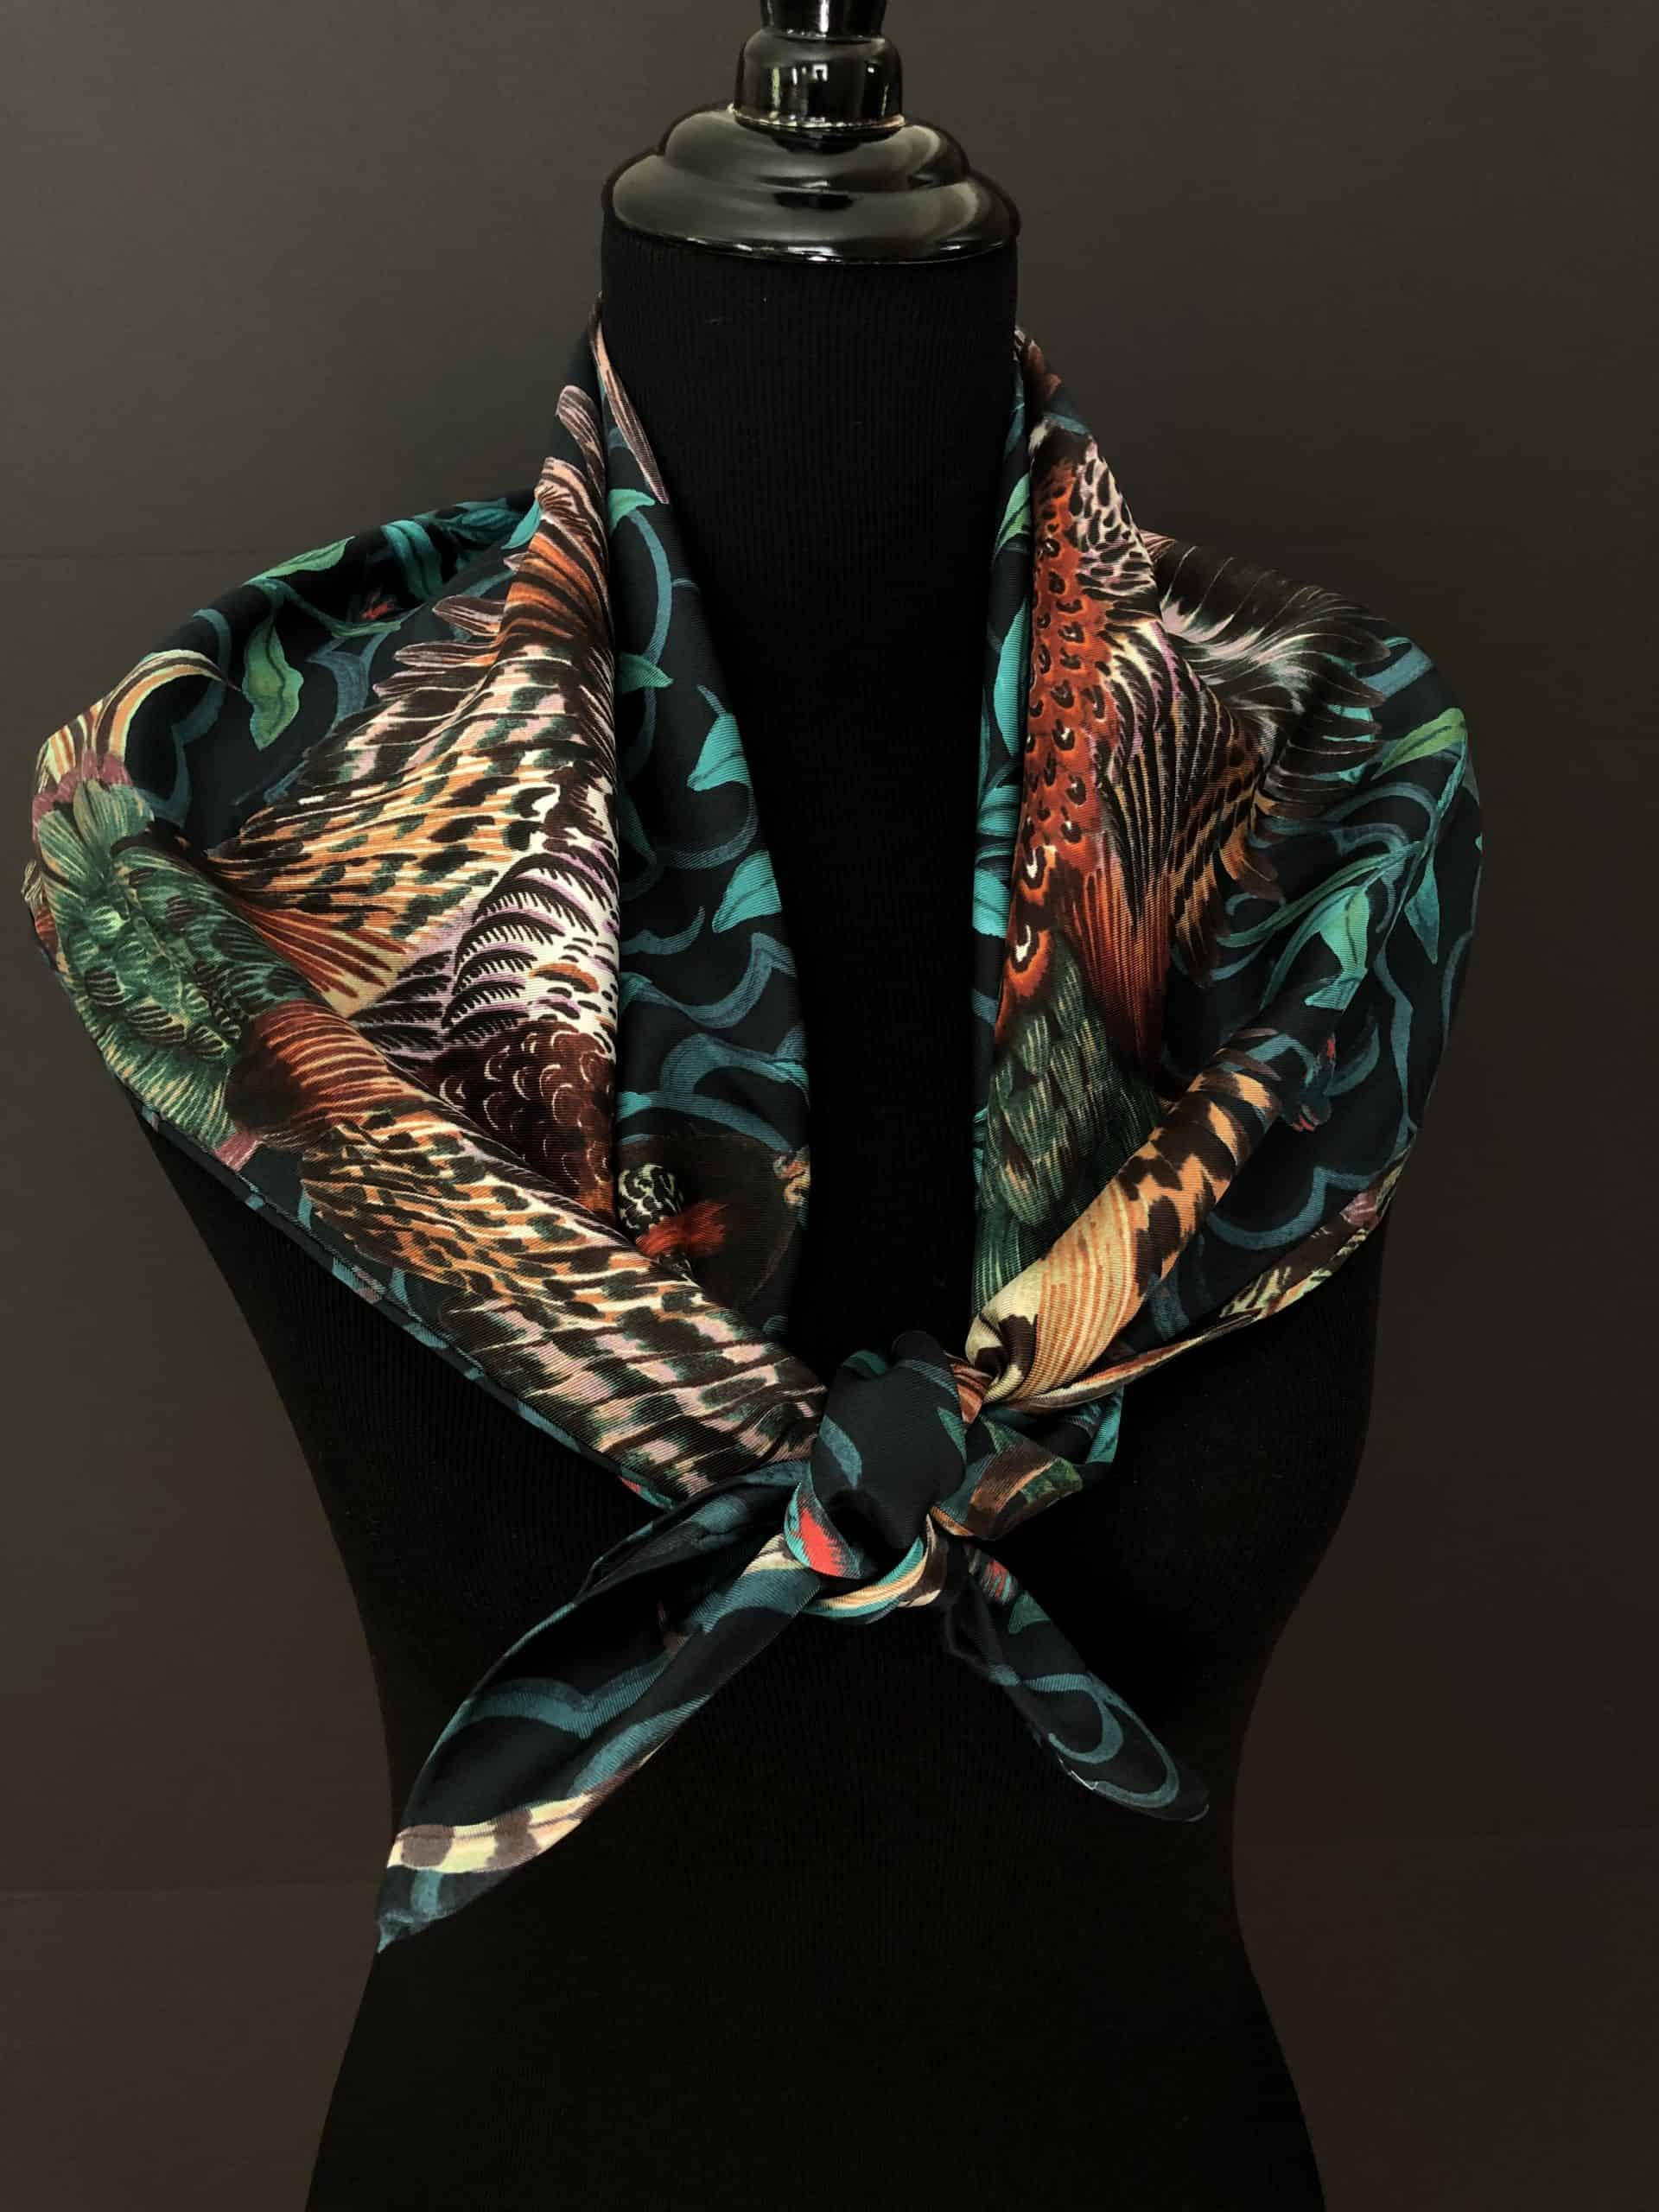 Illustrated by Phannapast T, Silk Scarf